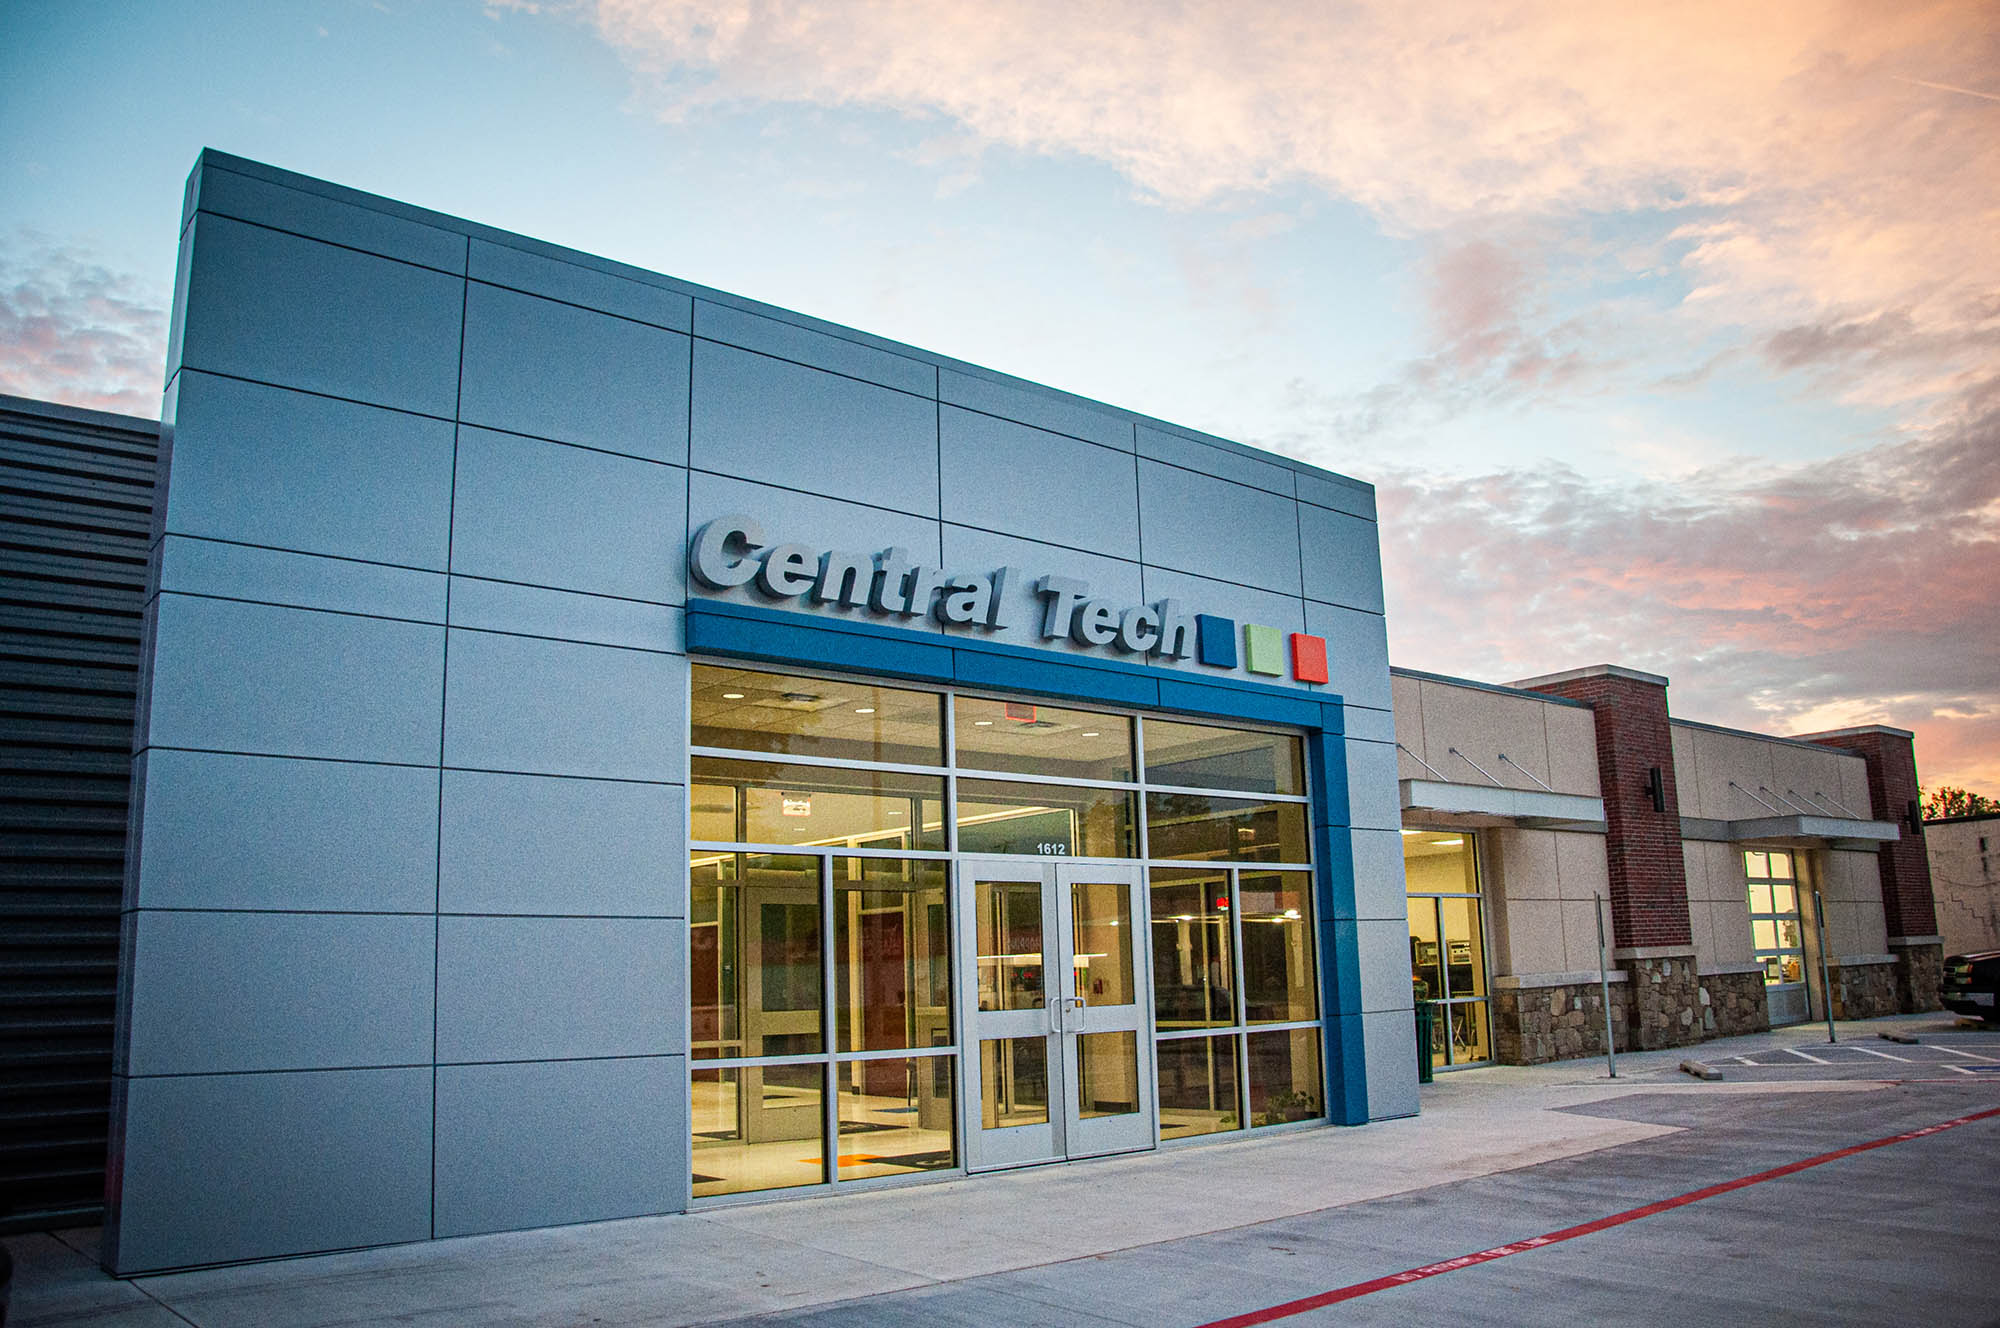 Central Tech Business and Industry Services building in Sapulpa